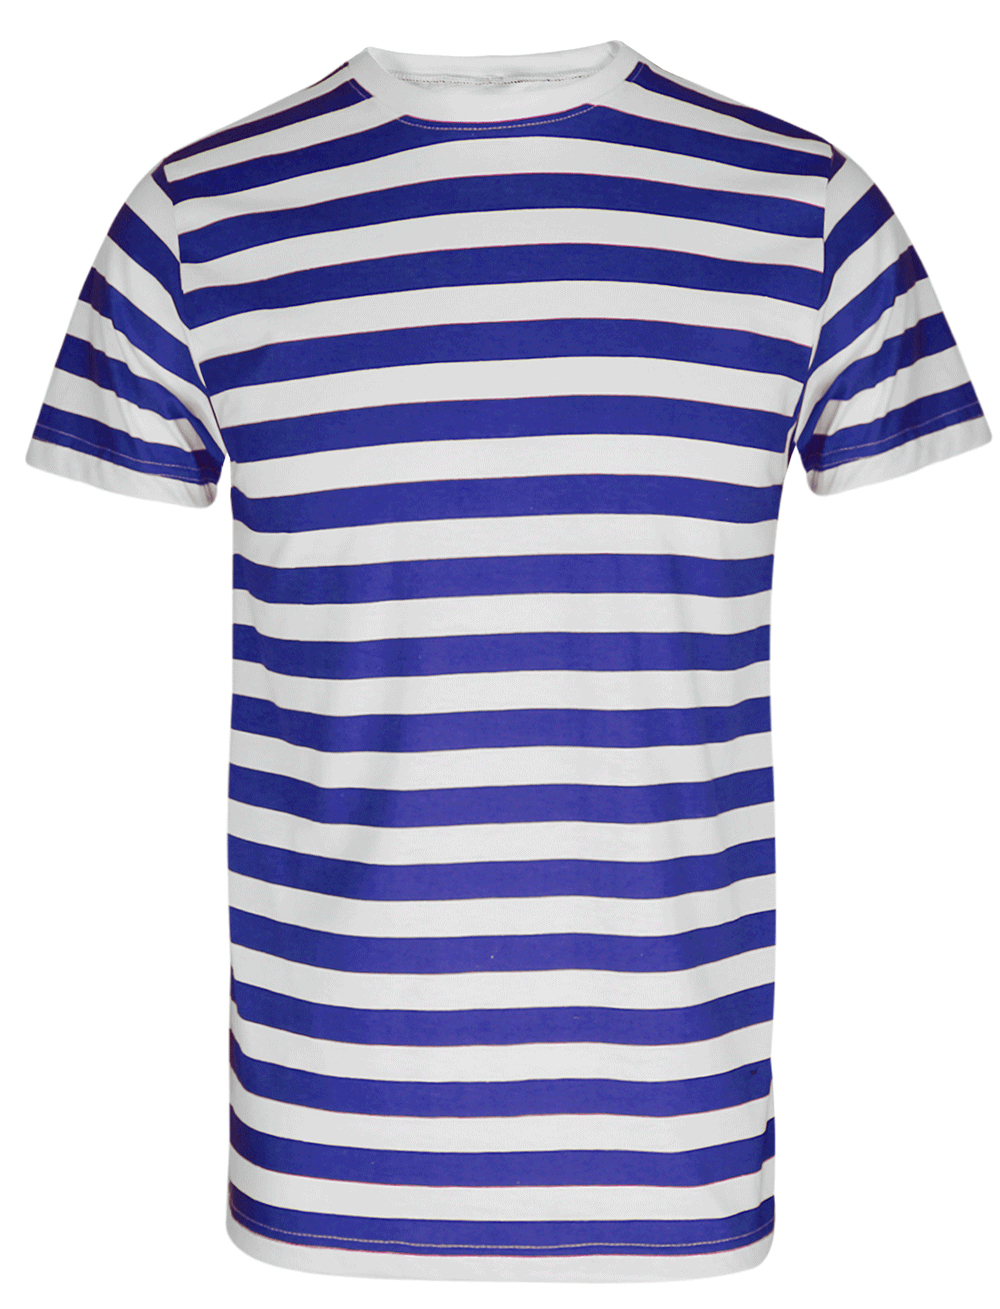 Men s boys red and white striped t shirt top blue black